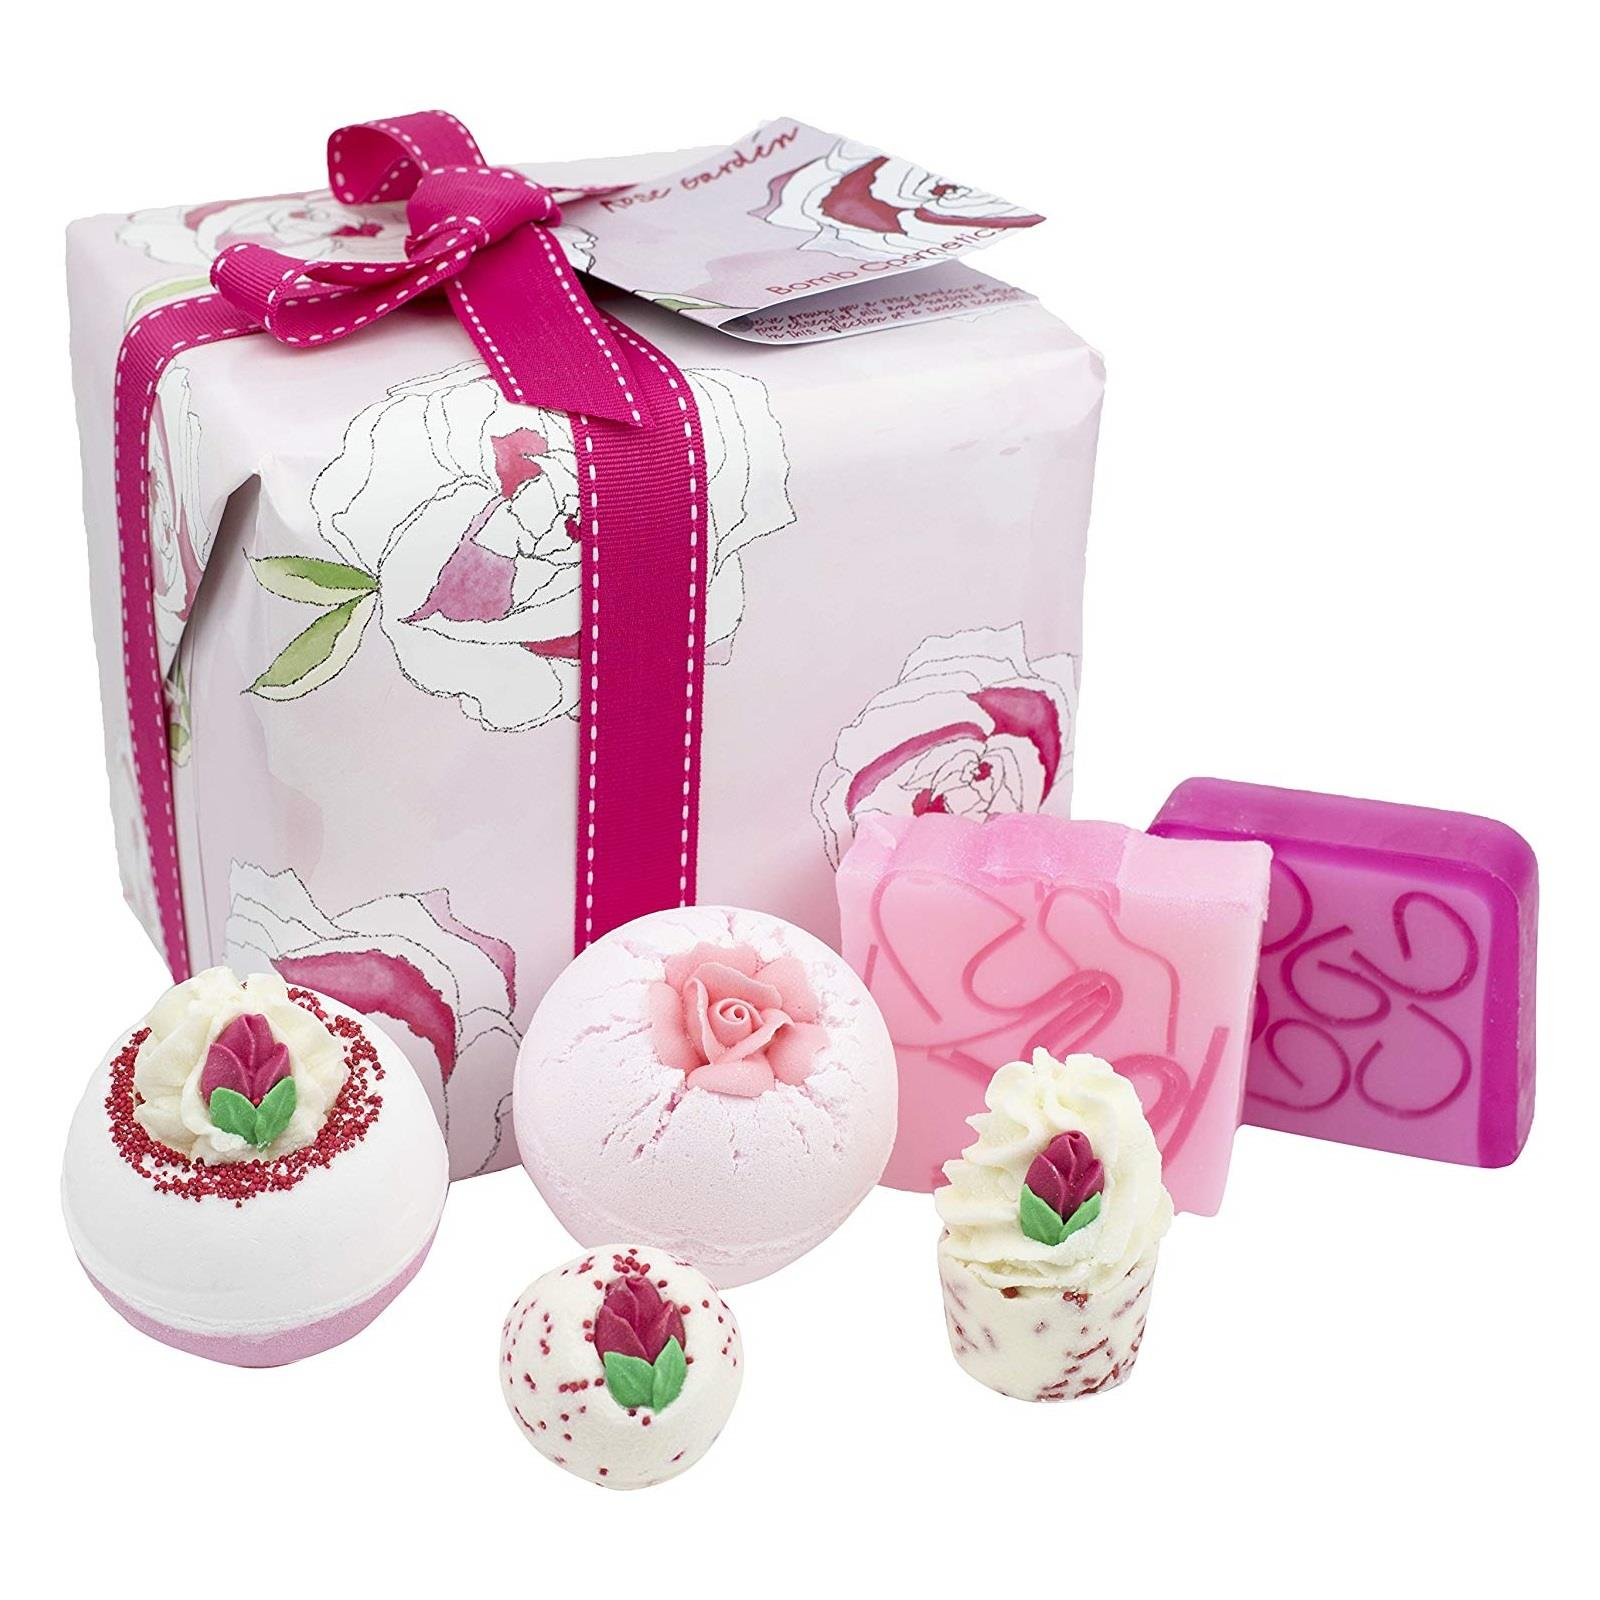 Details about Bomb Cosmetics Rose Garden Gift Set Luxury Handmade Bath Body  Square Wrapped Box